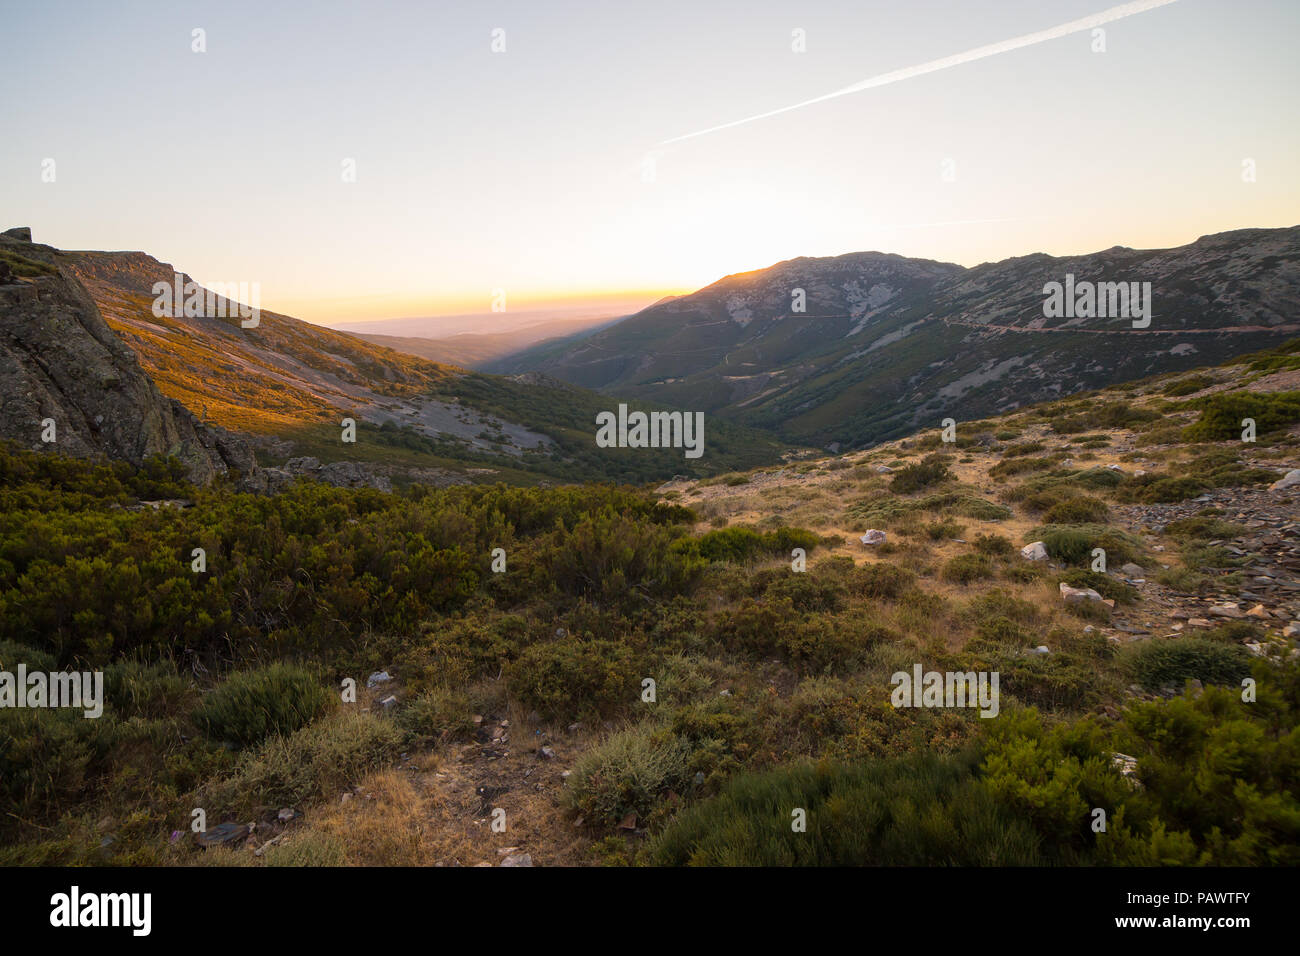 Beautiful Mountain Landscape At Sunset In La Pena De Francia Salamanca Spain